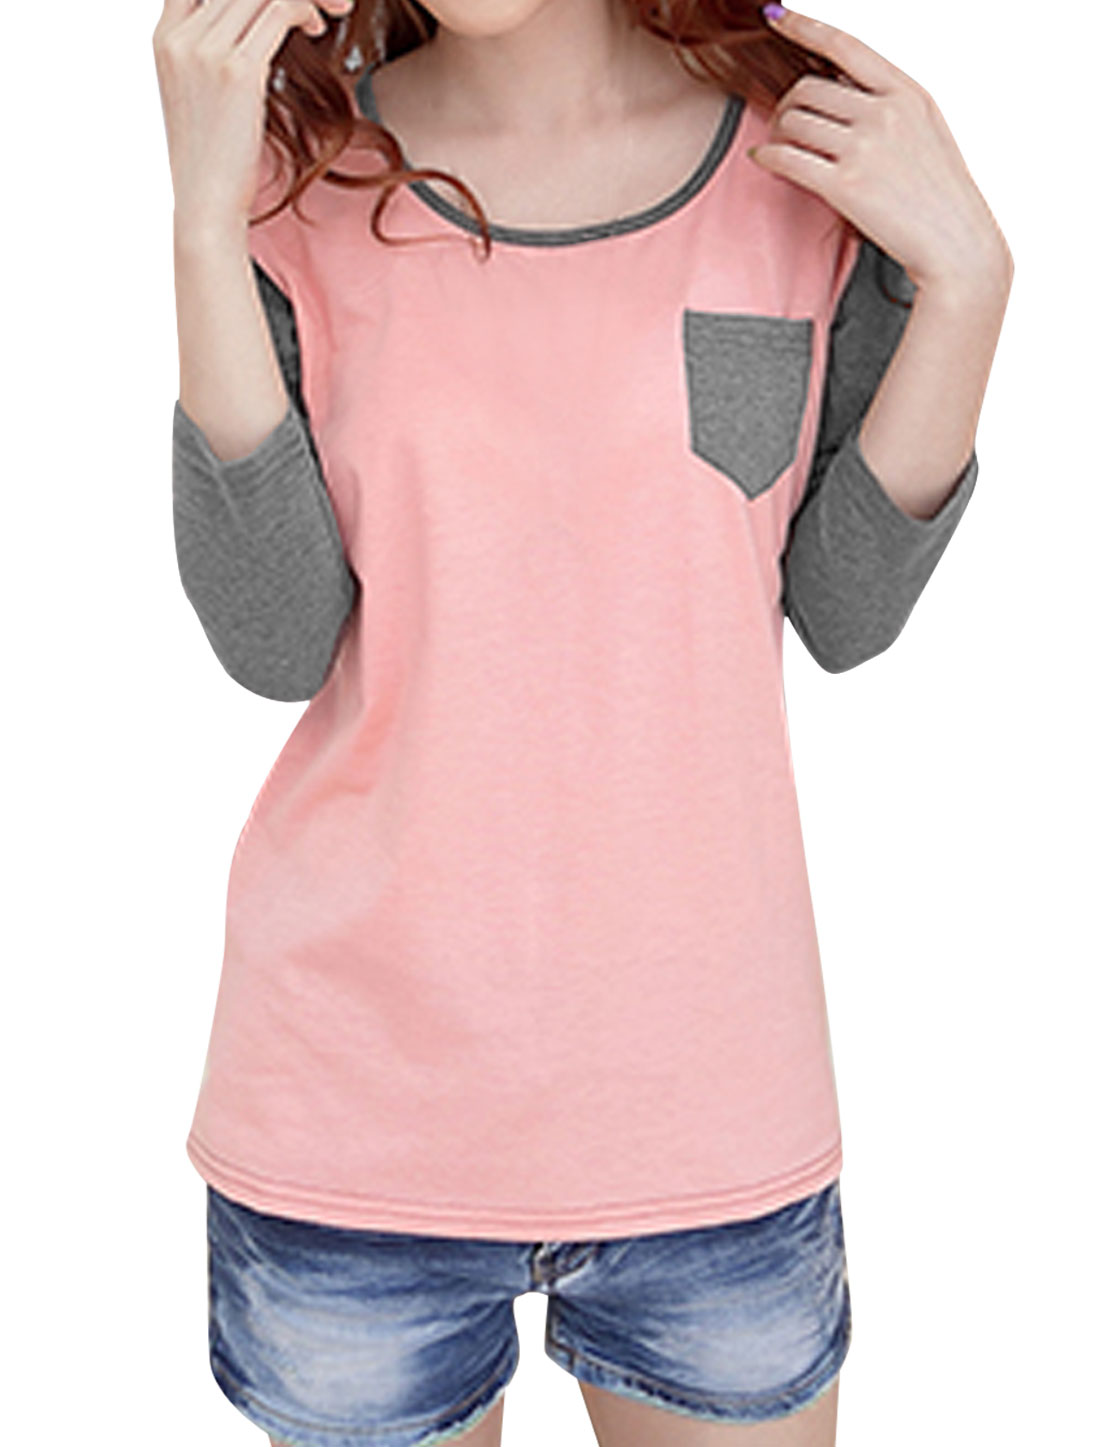 Women Long Sleeve Contrast Color One Chest Pocket T-shirt Pink Gray S